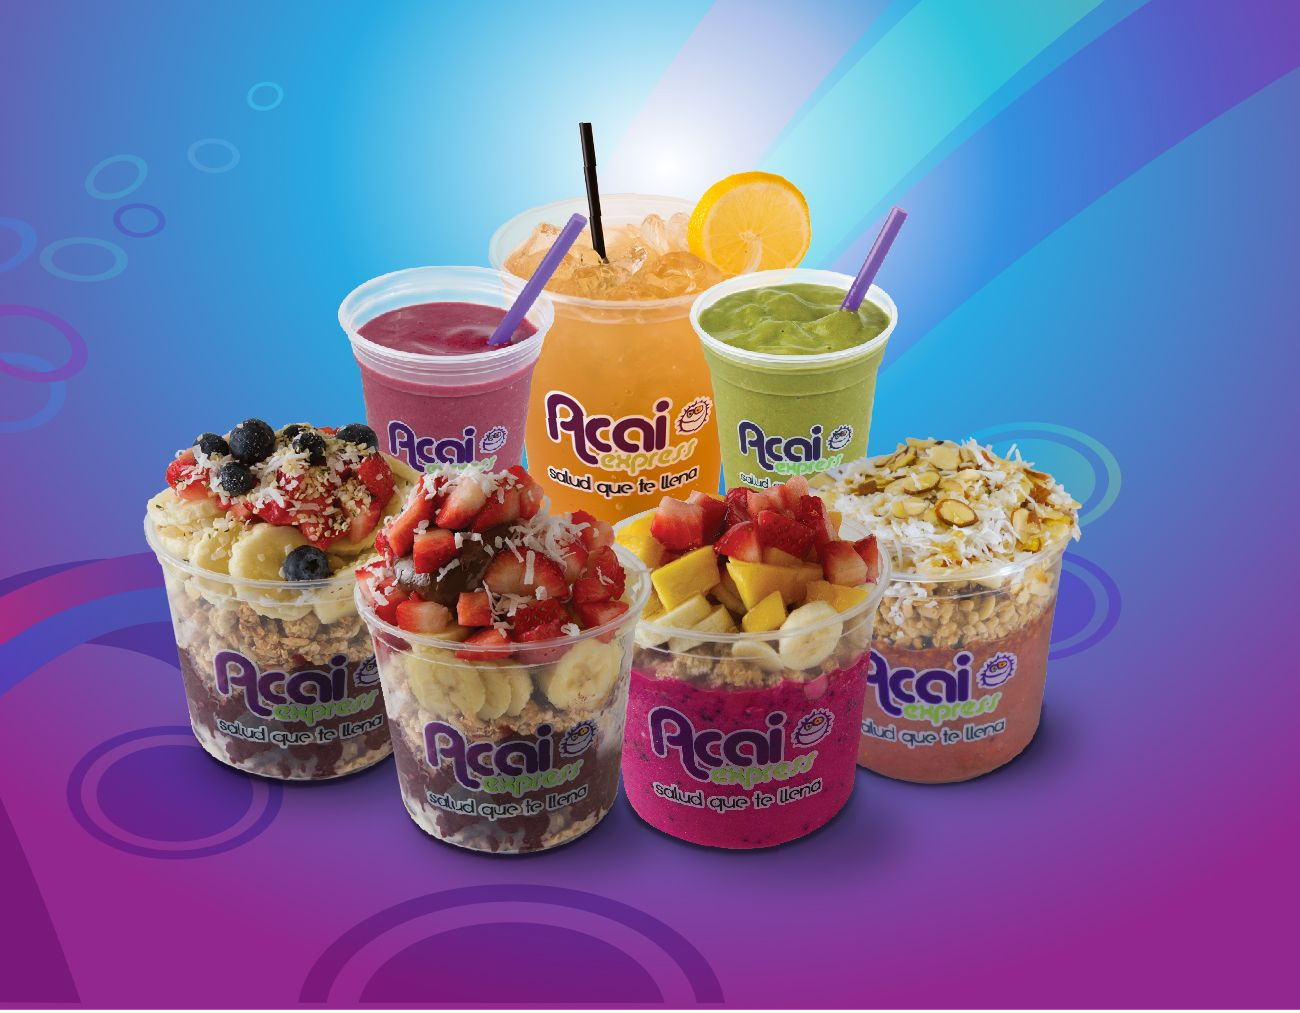 Acai Express Opens in Rockaway, New Jersey